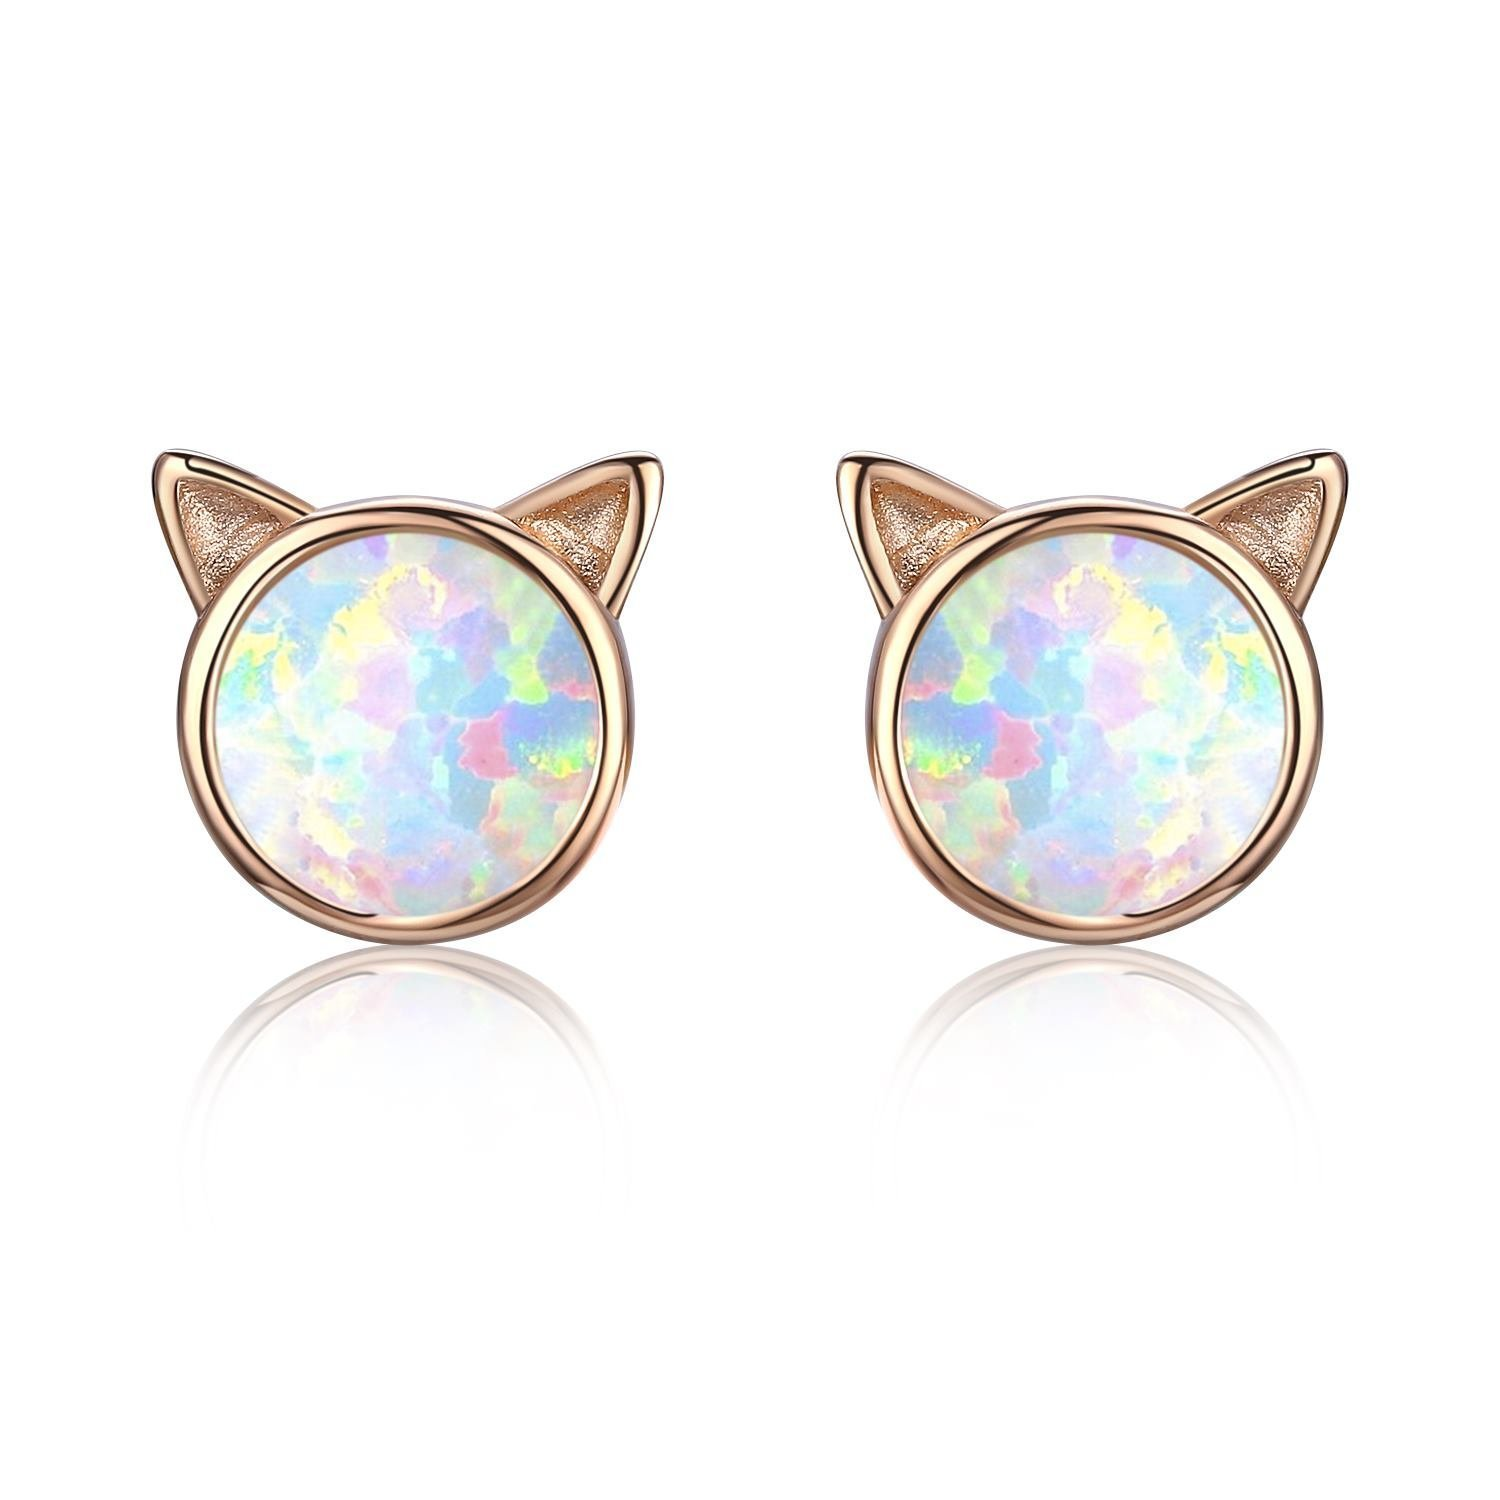 Opal Stud Earrings, Cat Ear Stud Earrings 18K Gold Plated Sterling Silver Cute Kitten Earrings Gift for Cat Lovers